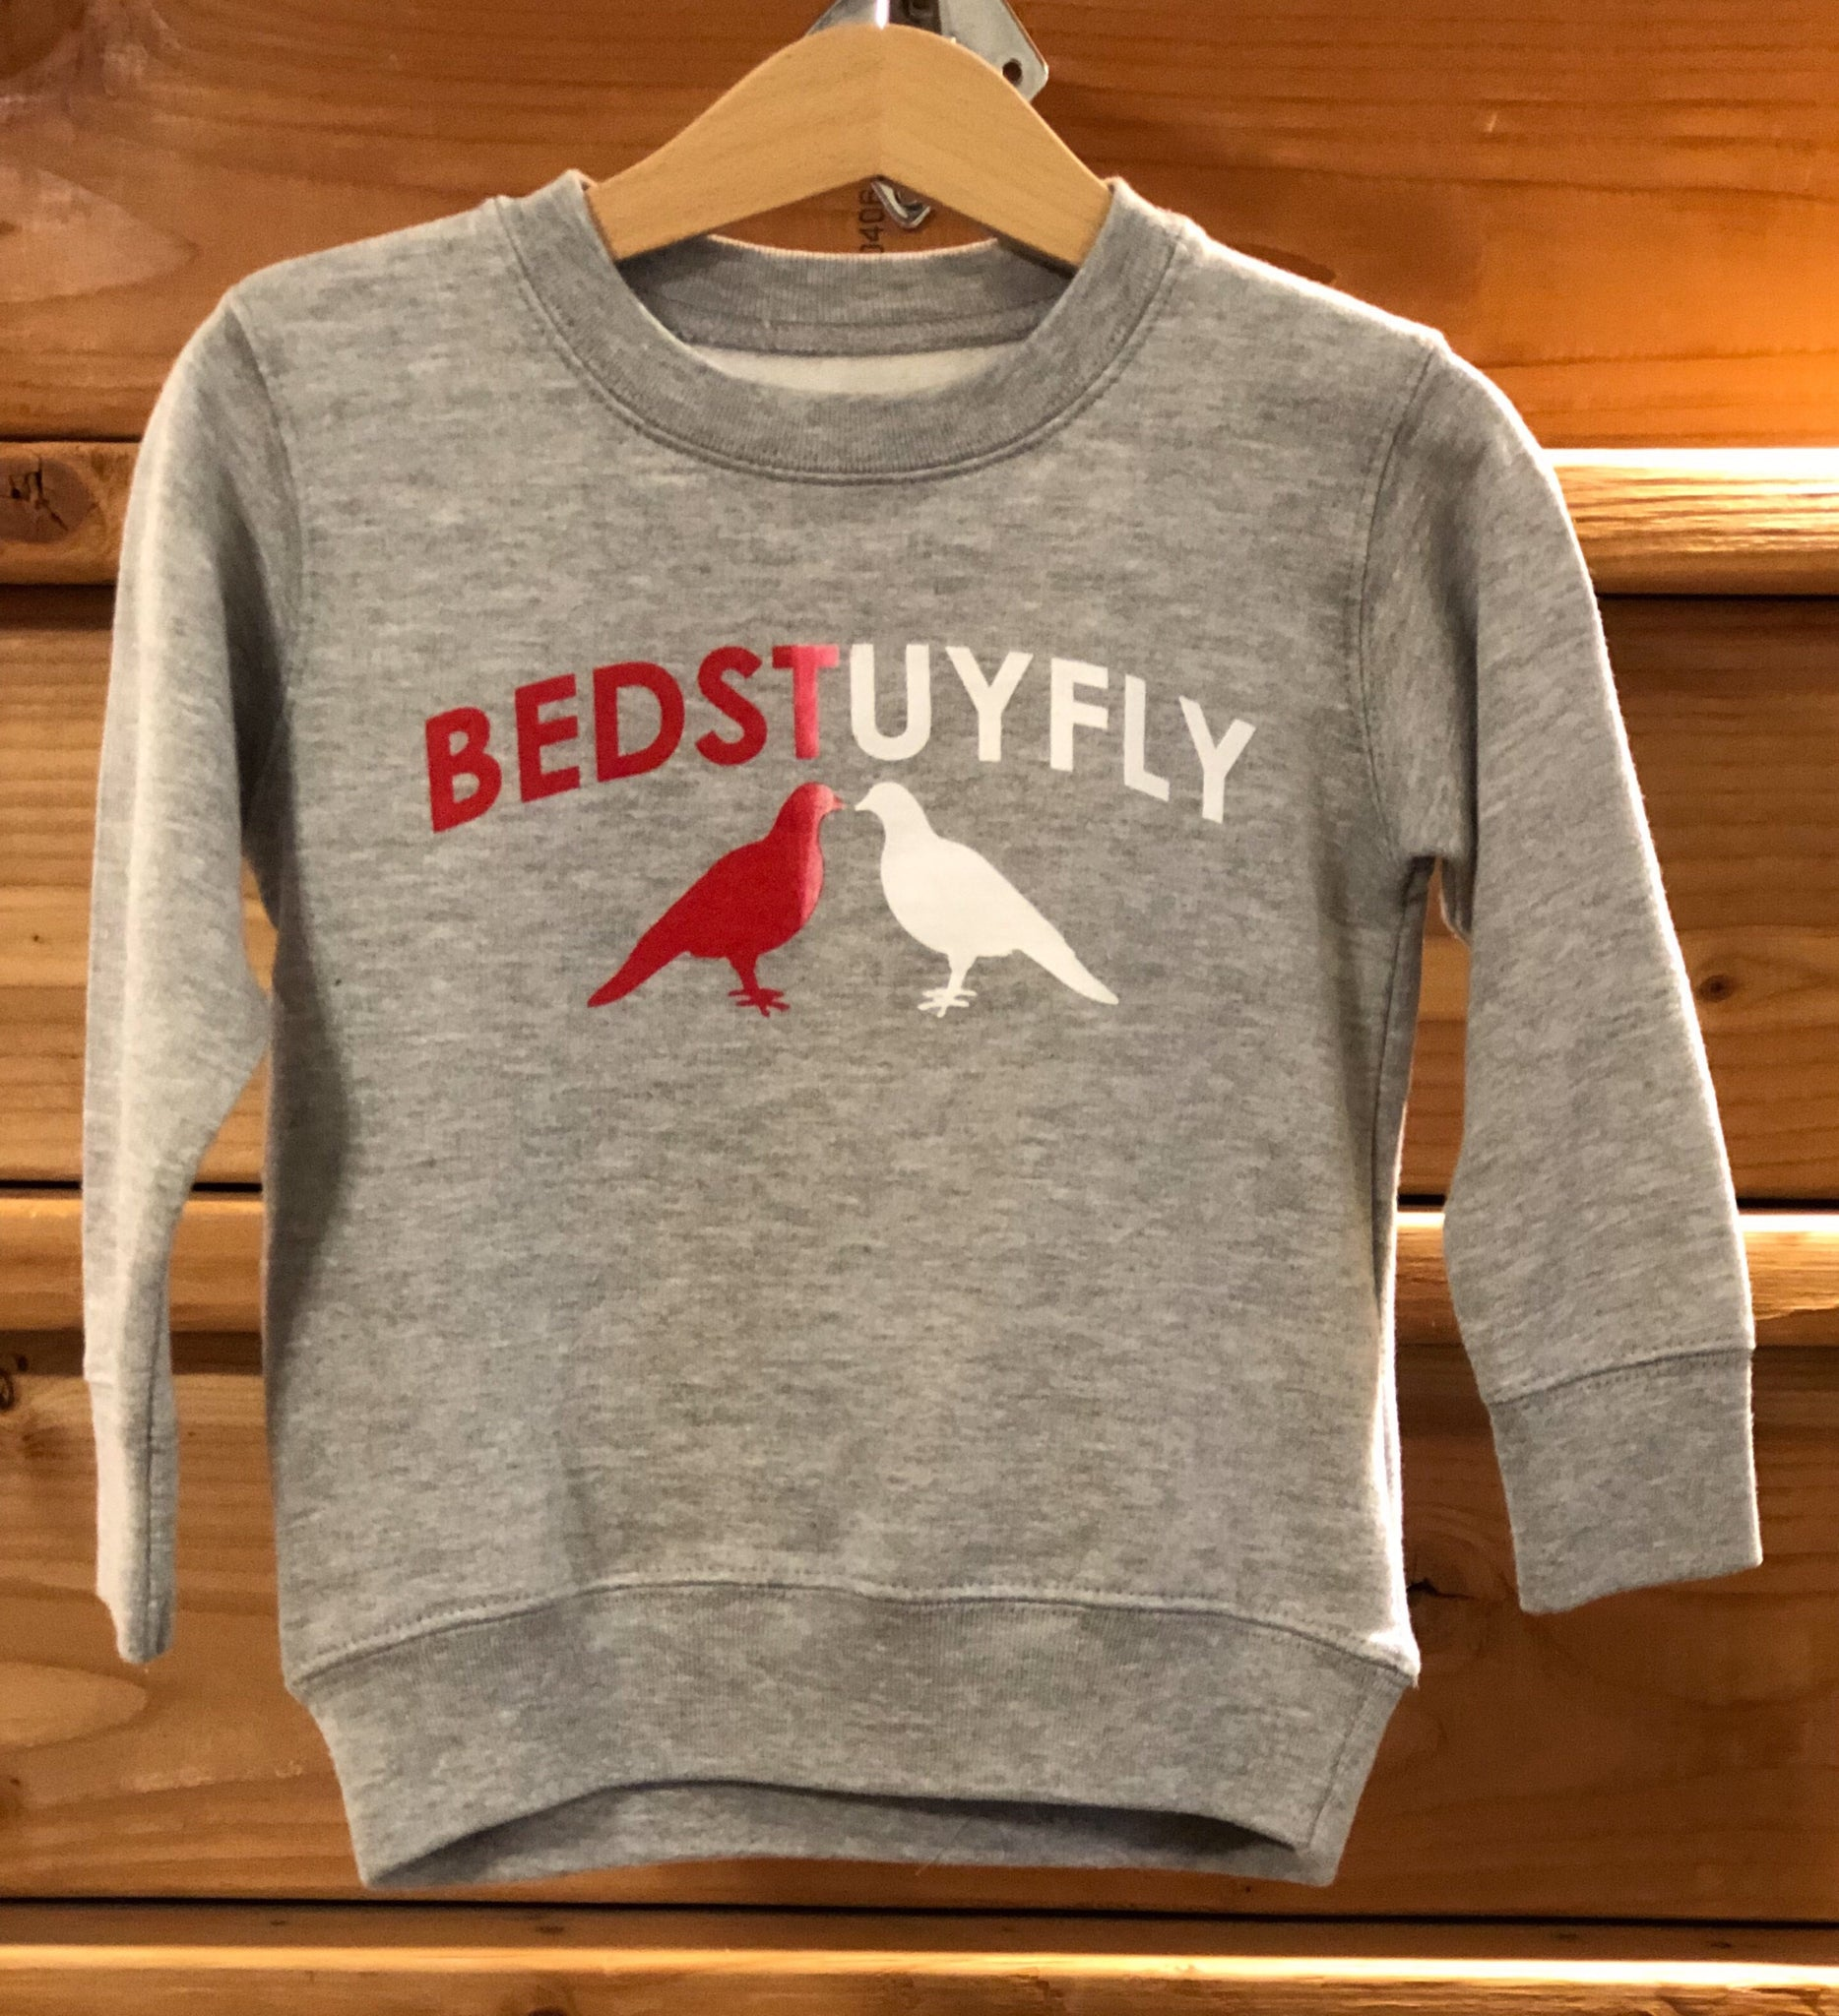 Bedstuyfly Toddler Sweatshirt (Gry)